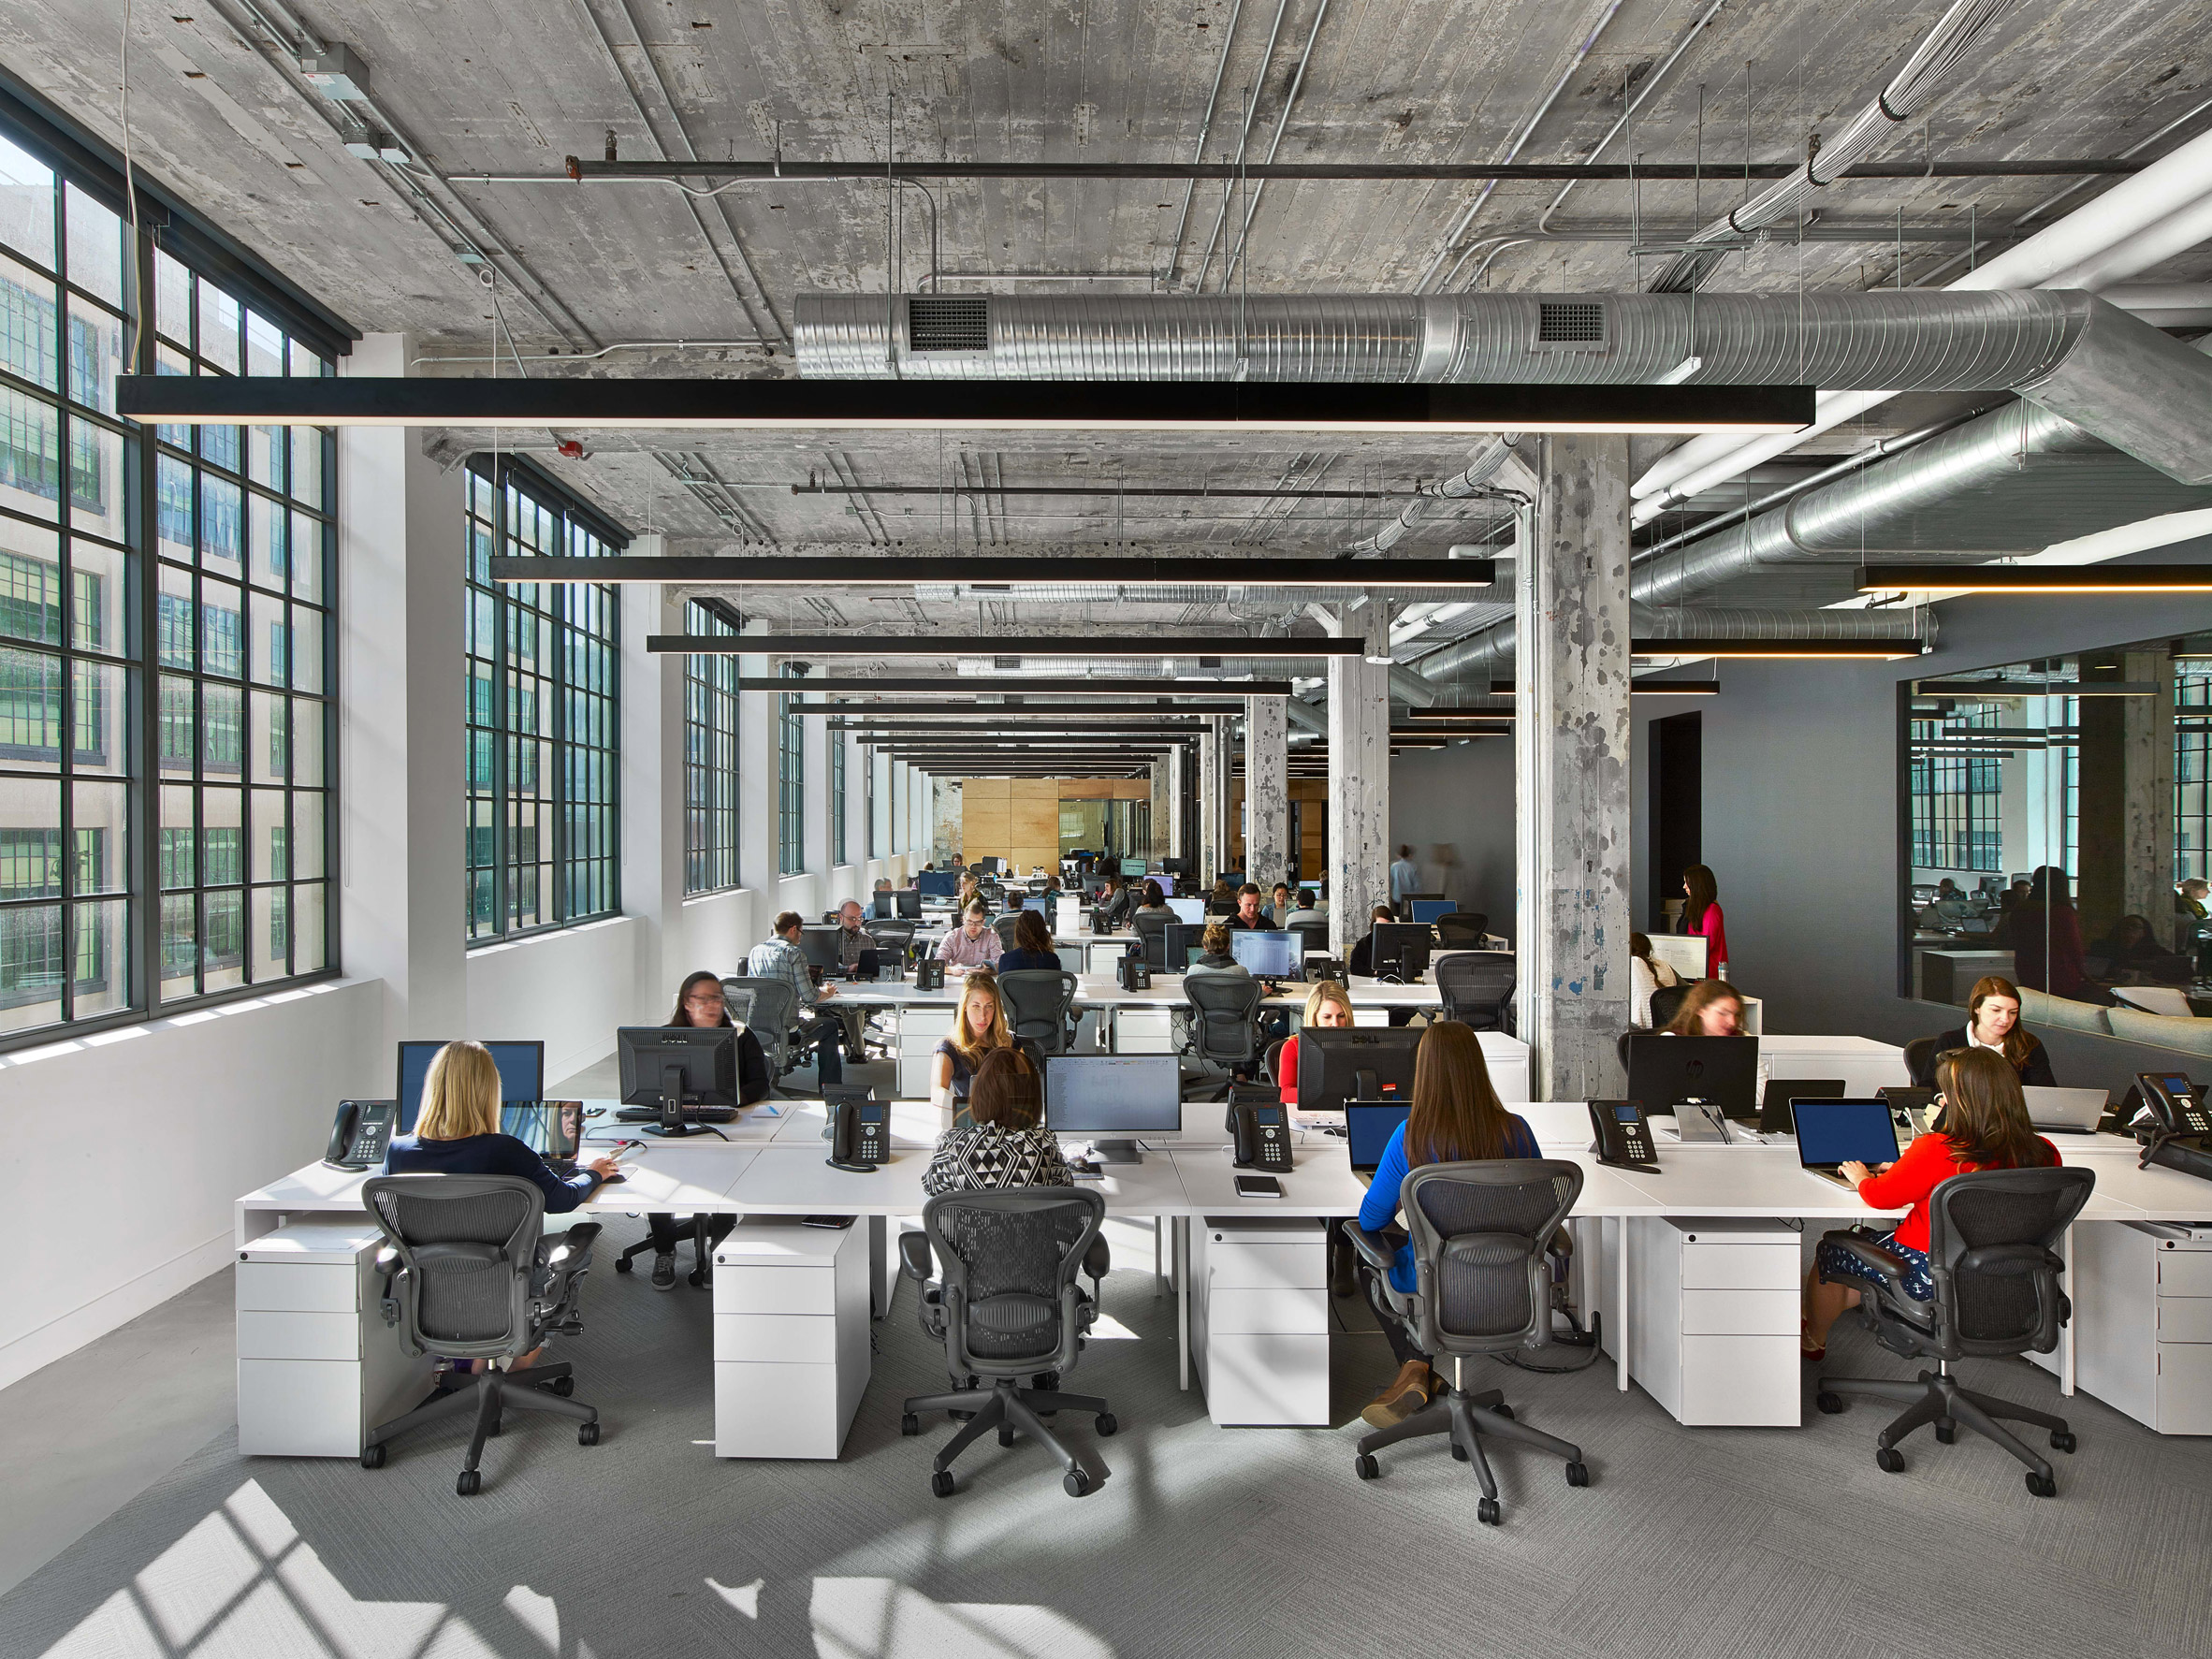 mullen-lowe-offices-tpg-architecture-interiors-north-carolina-usa_dezeen_2364_col_12.jpg